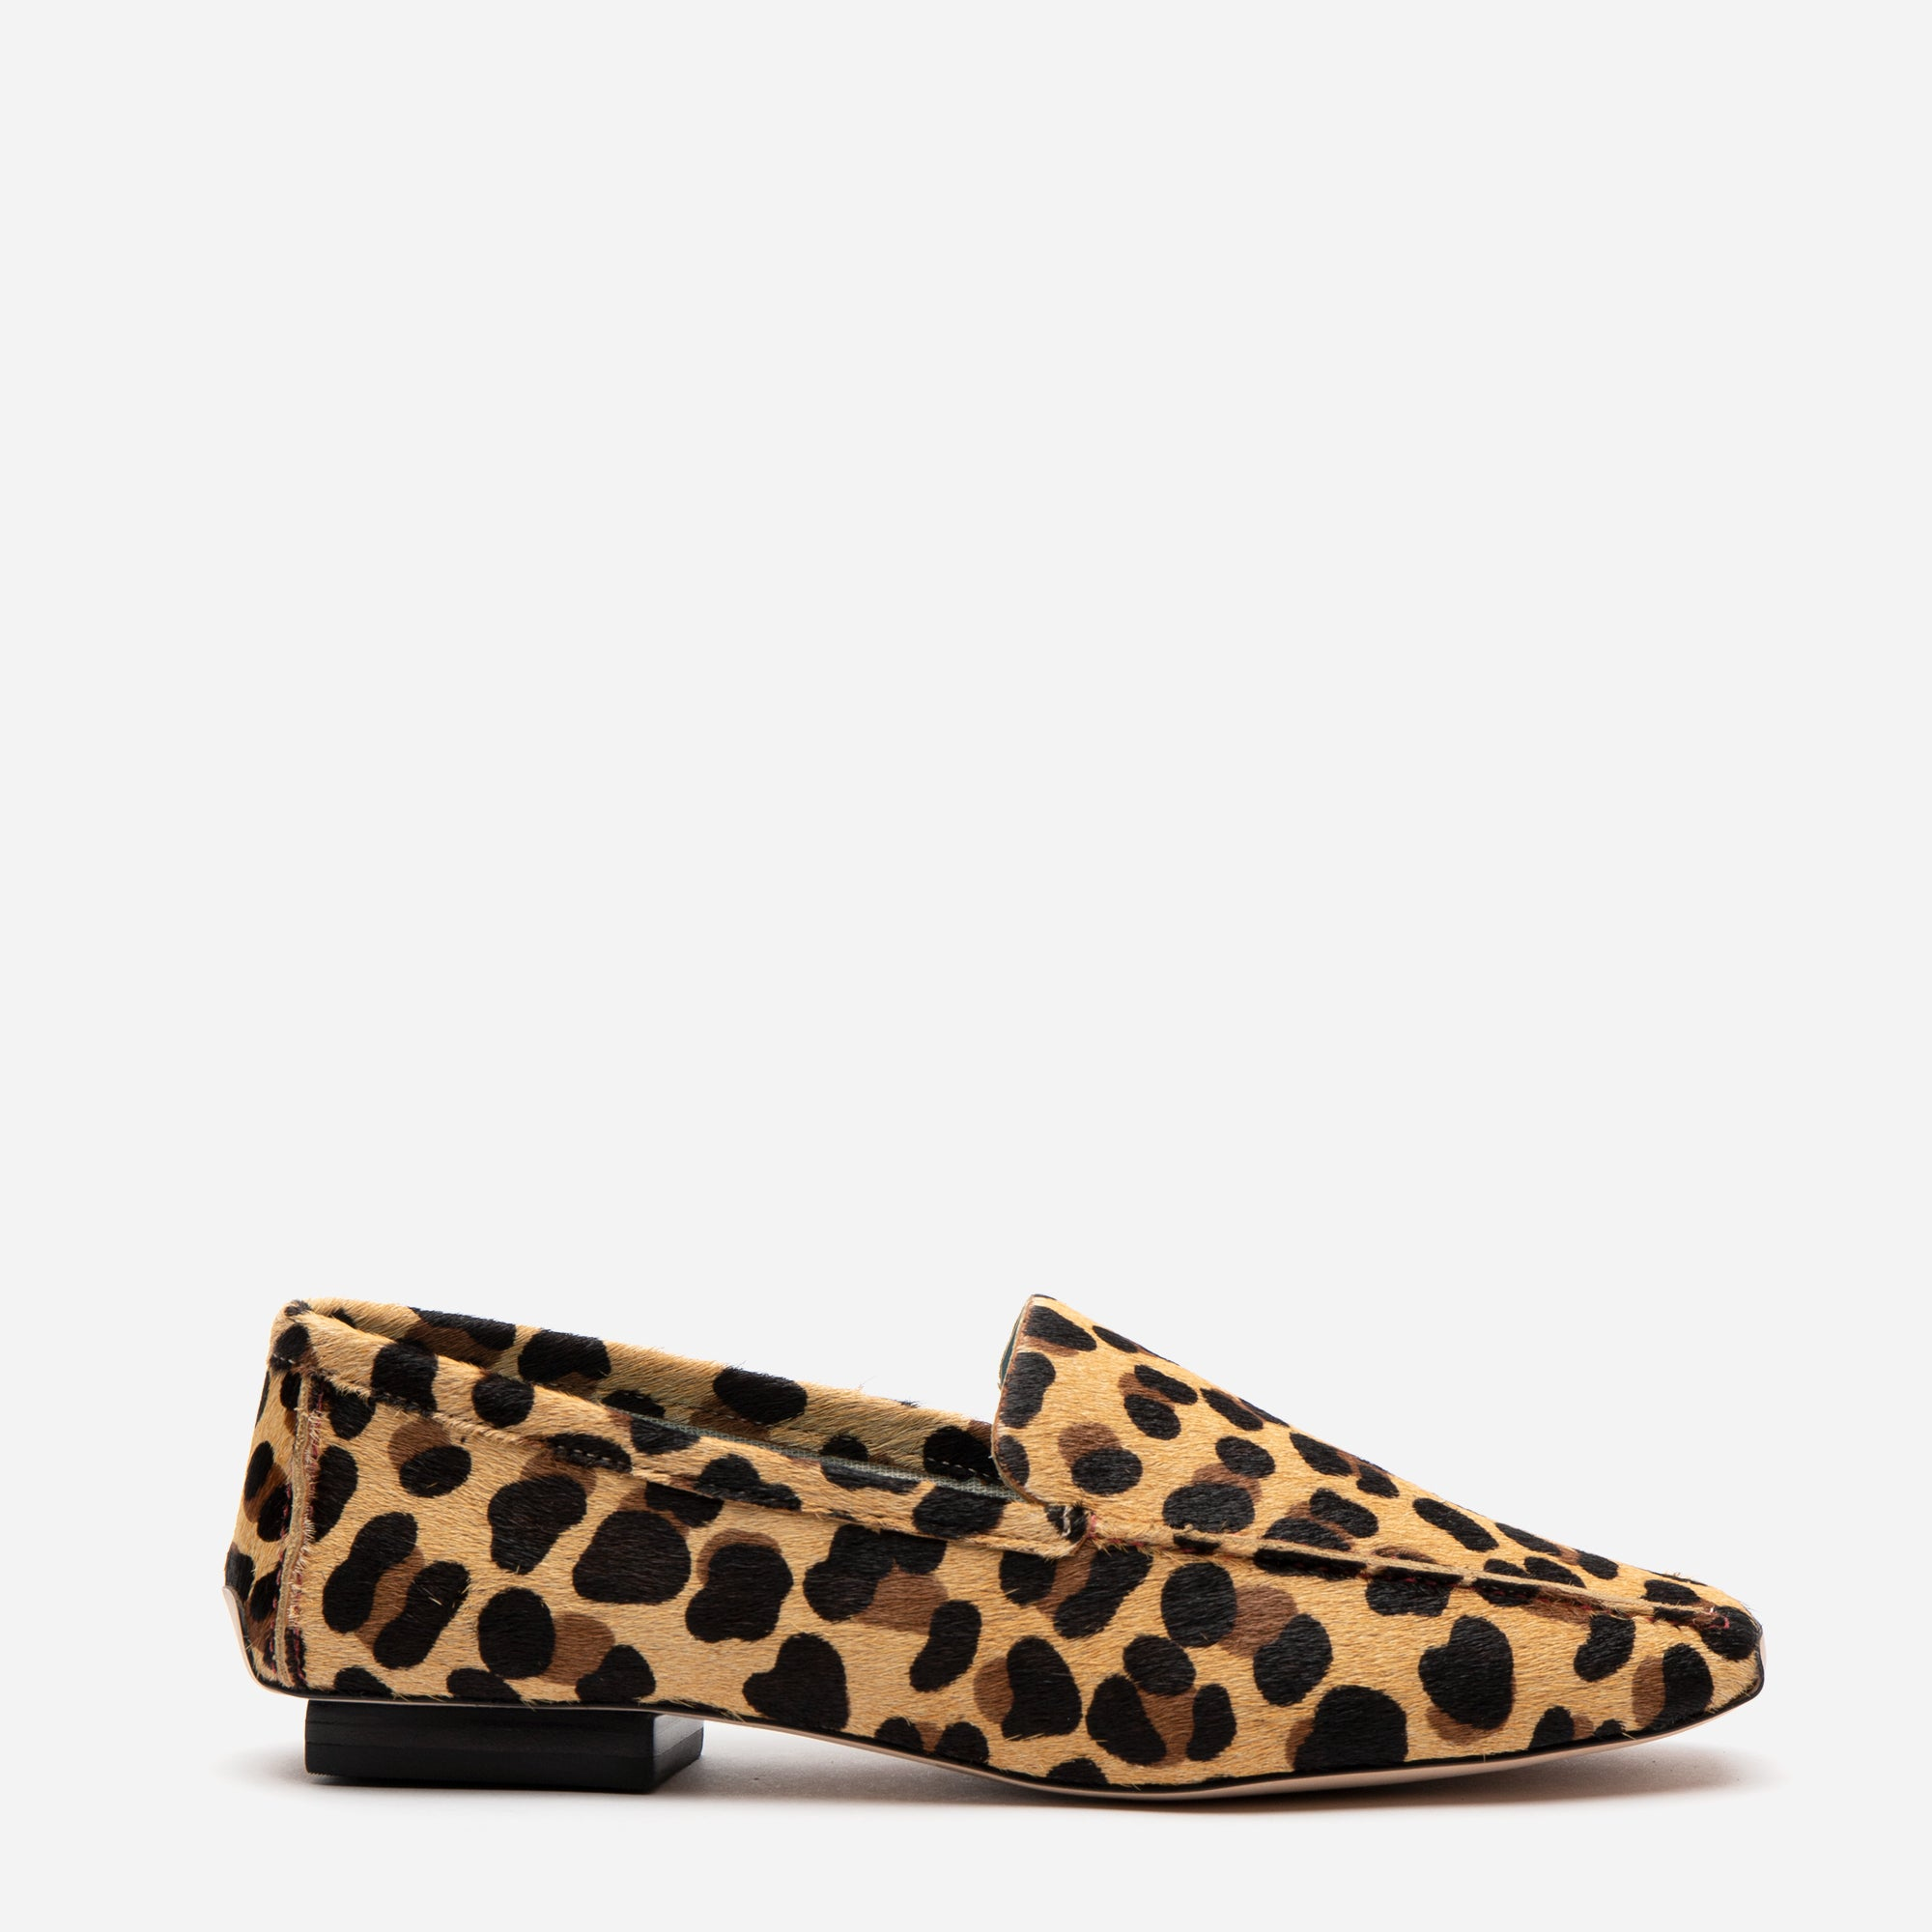 Elyce Loafer Leopard Printed Haircalf - Frances Valentine